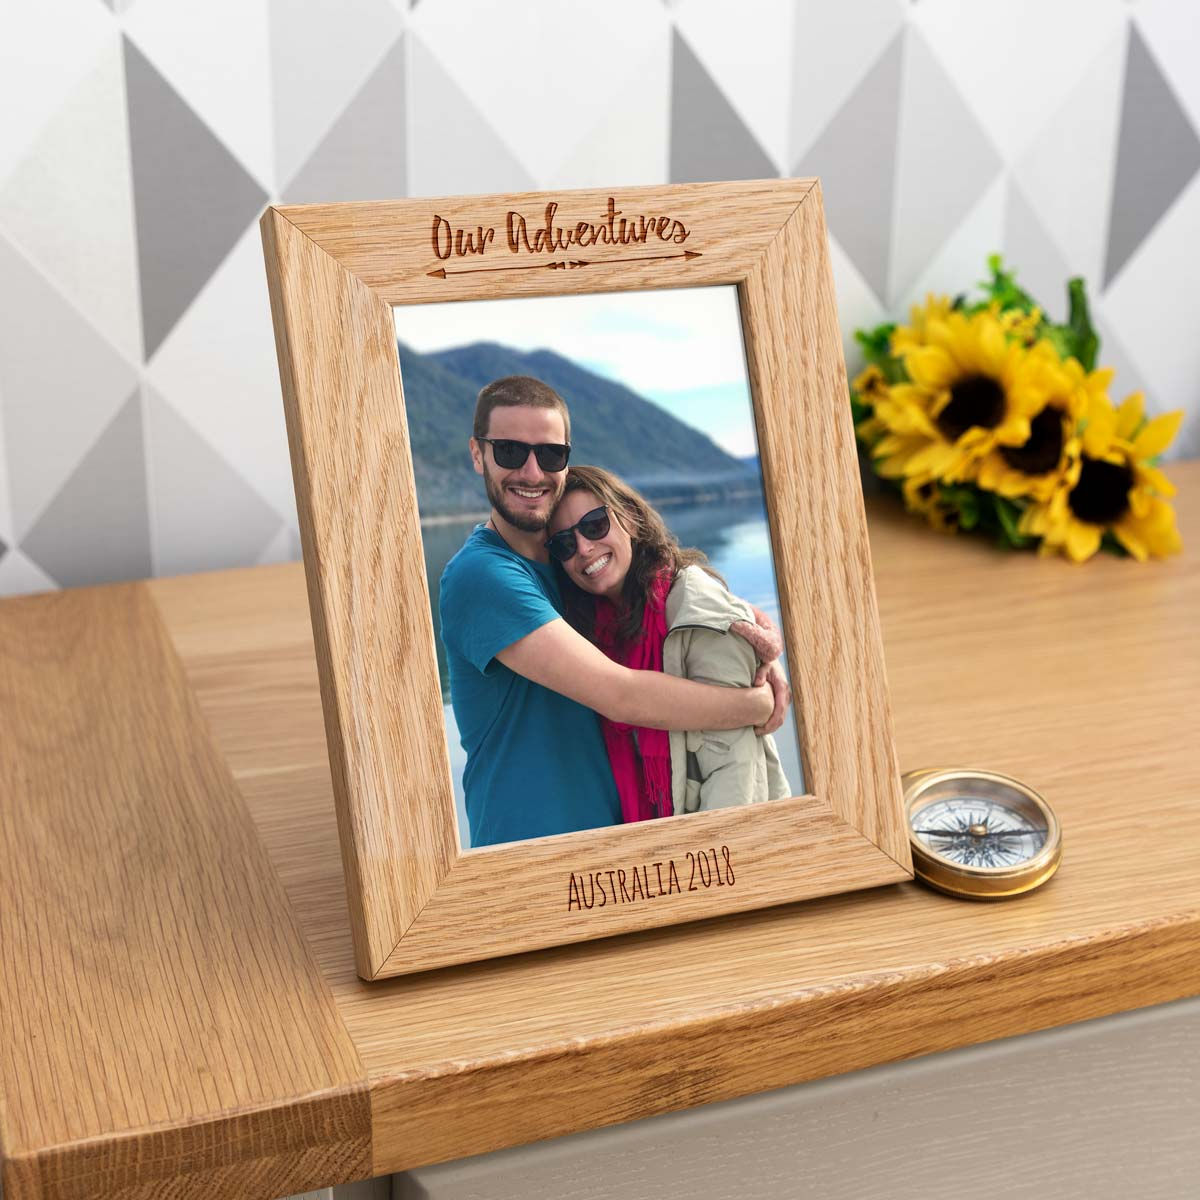 Personalised Our Adventures Photo Frame